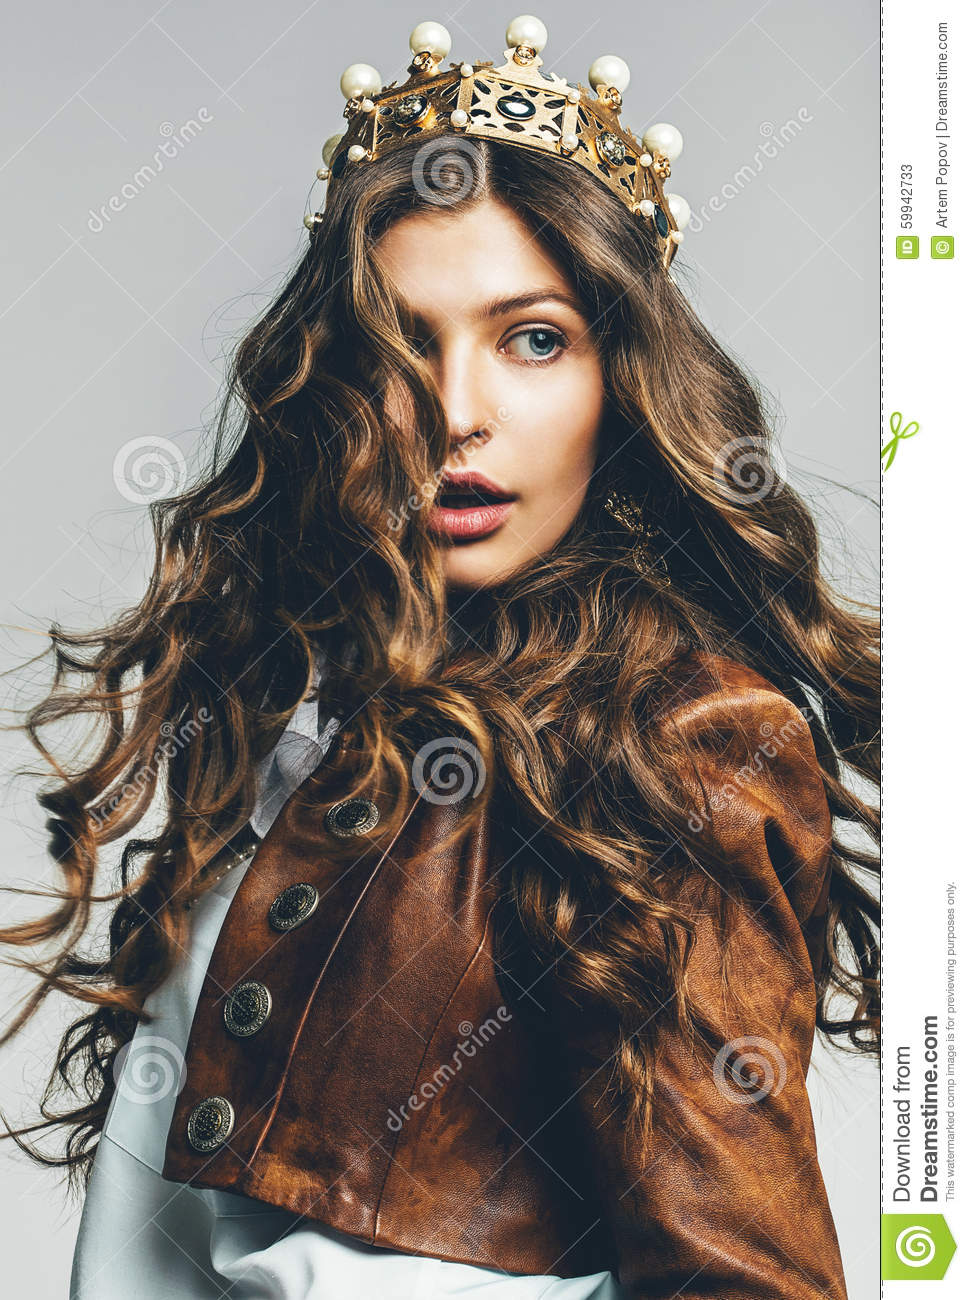 Beautiful woman with flying hair in crown